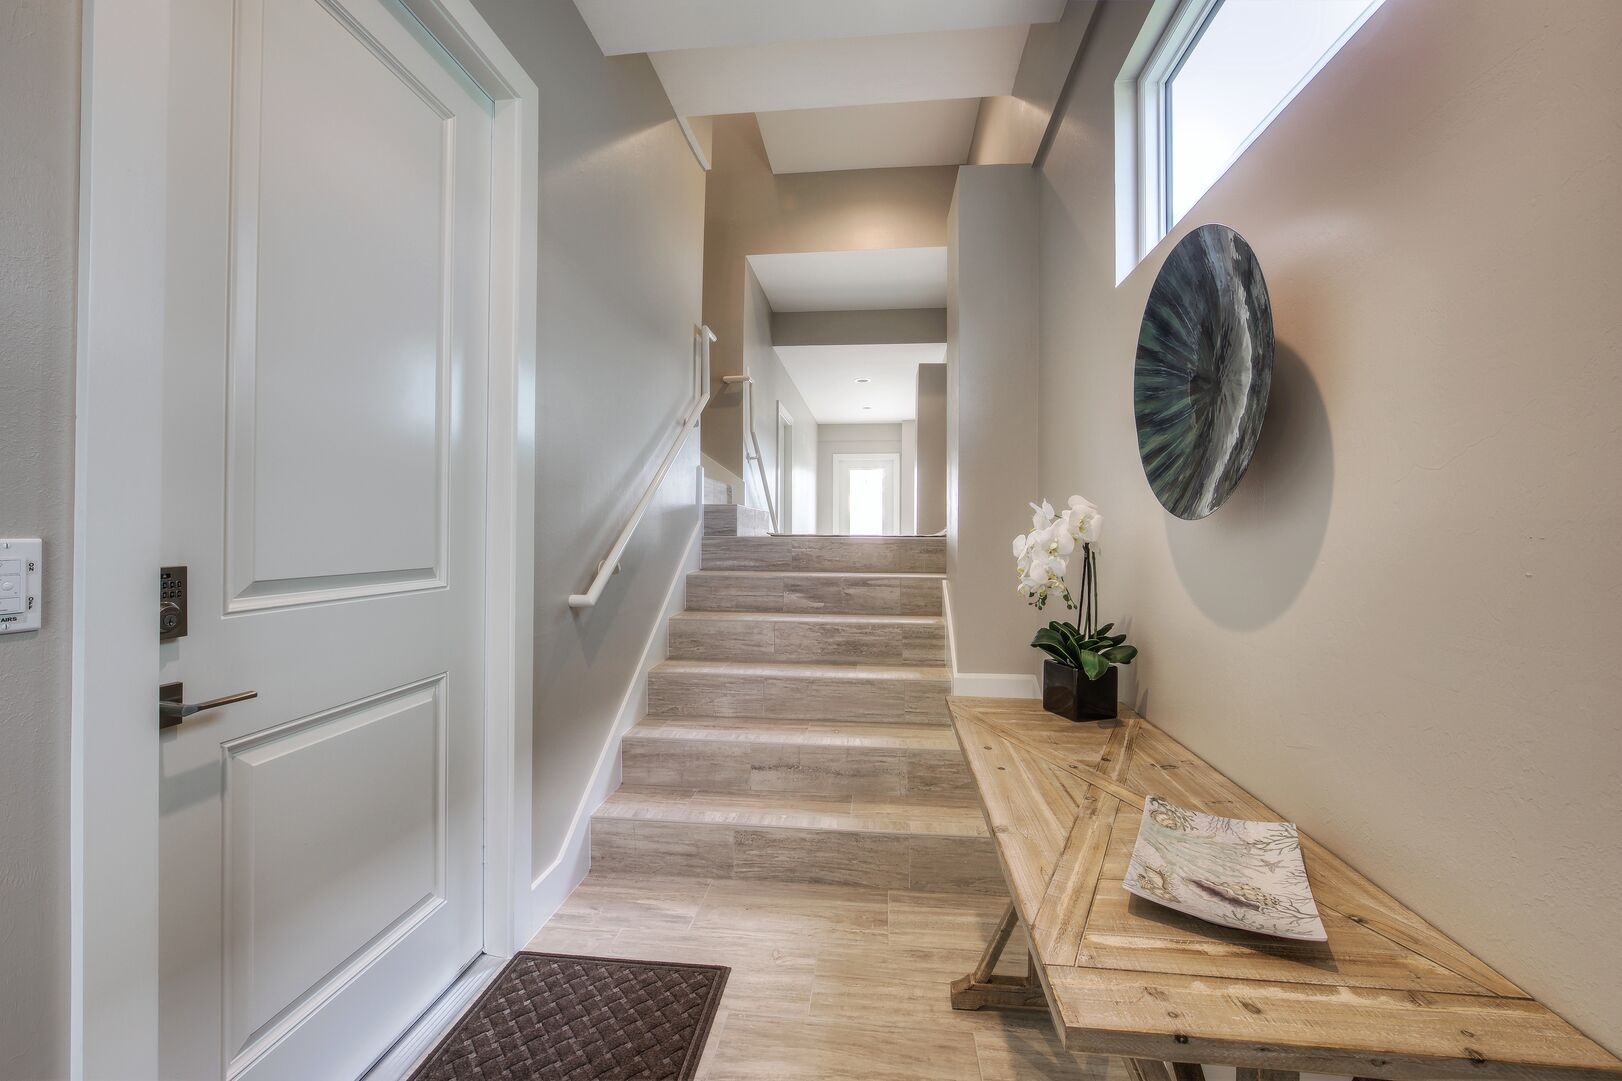 Hallway with Stairs Leading to other Rooms